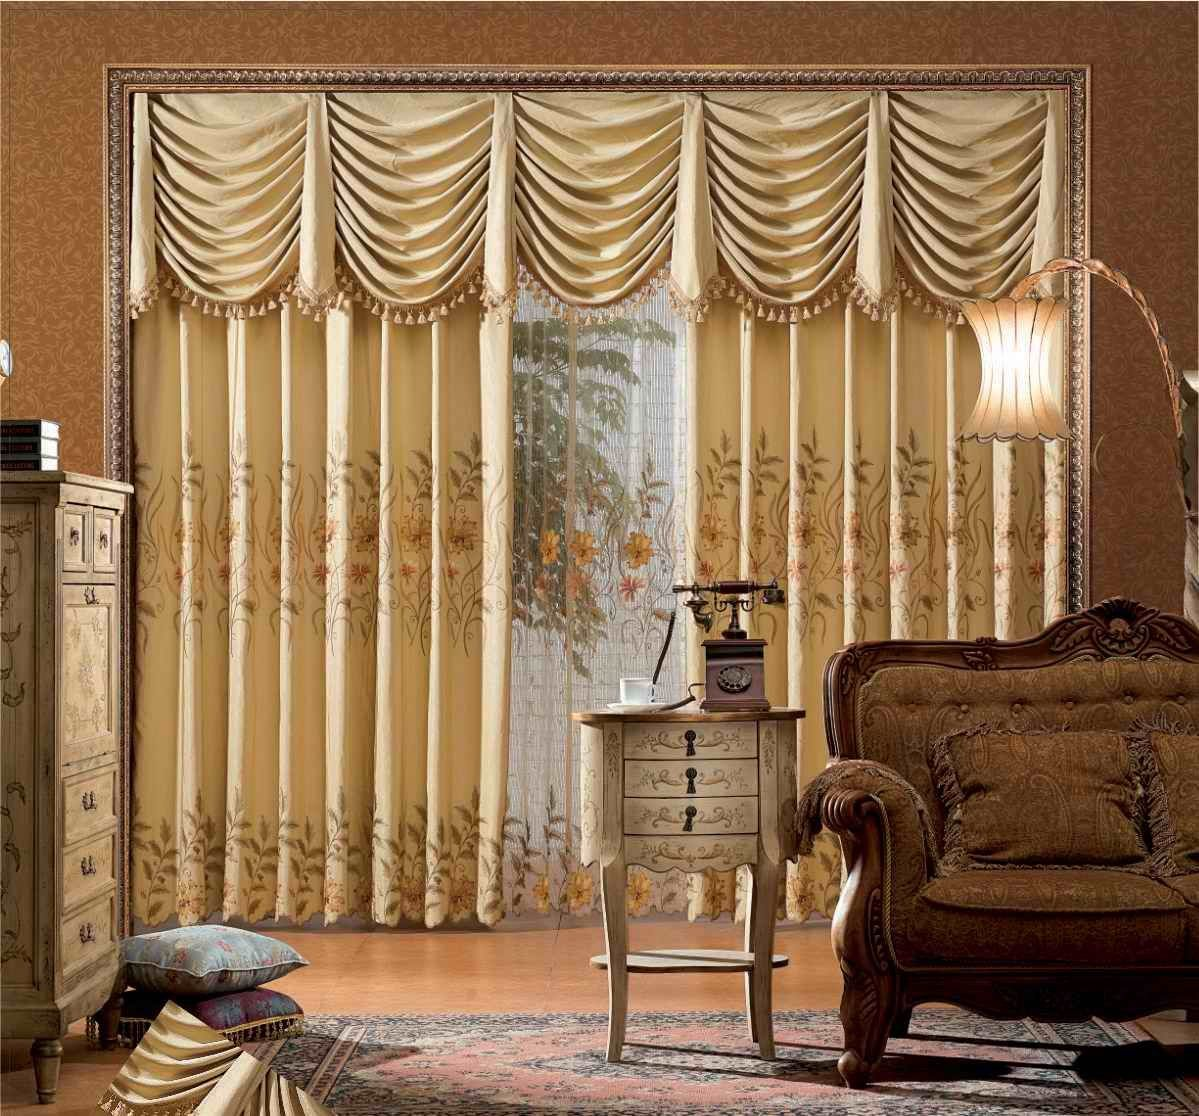 Drapery Designs For Living Room Beauteous Make Modern Living Room Curtains  Httphighlifestylewp Inspiration